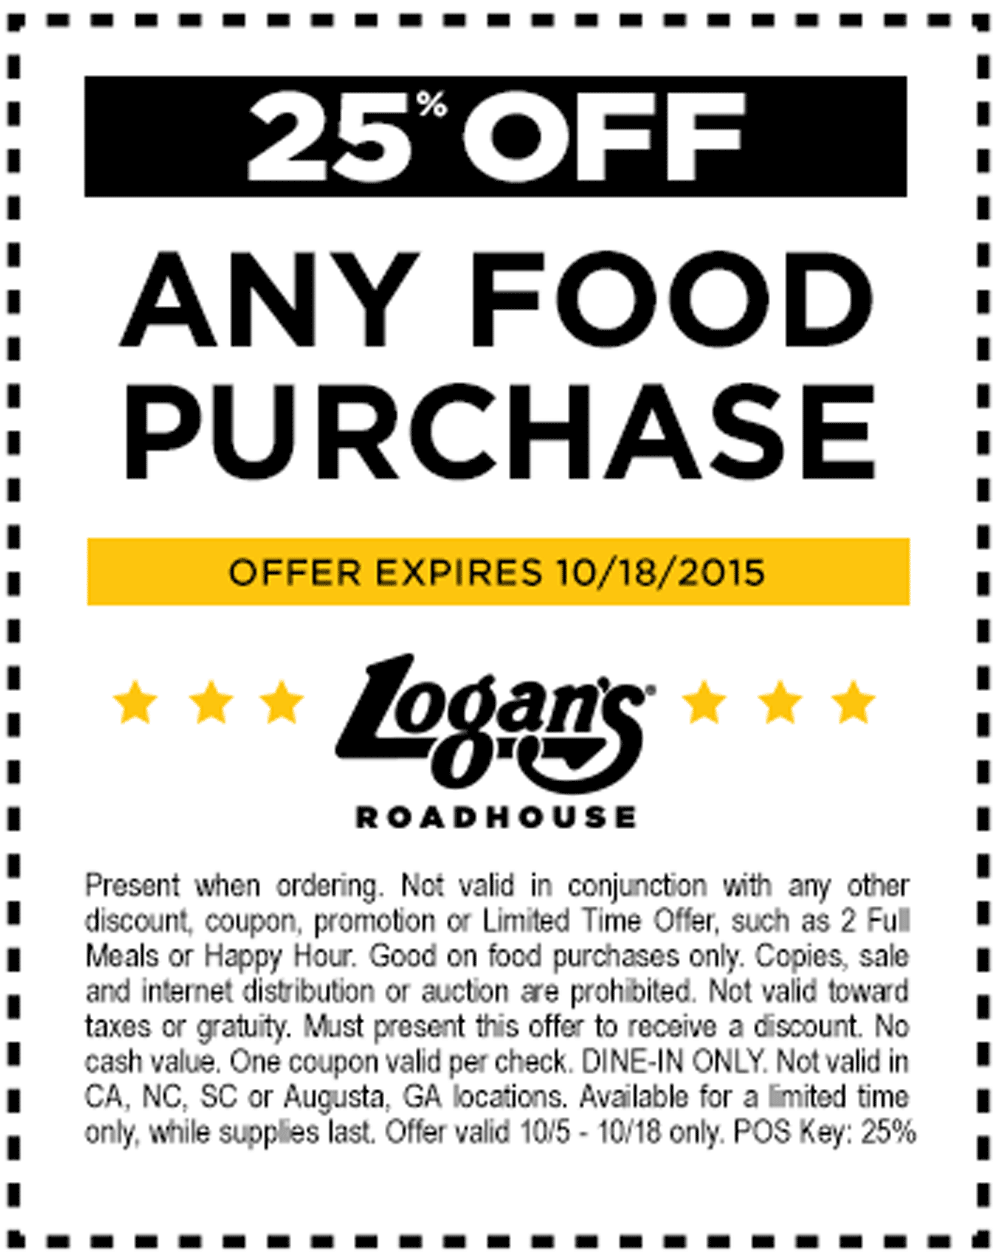 Logans Roadhouse Coupon February 2018 25% off at Logans Roadhouse